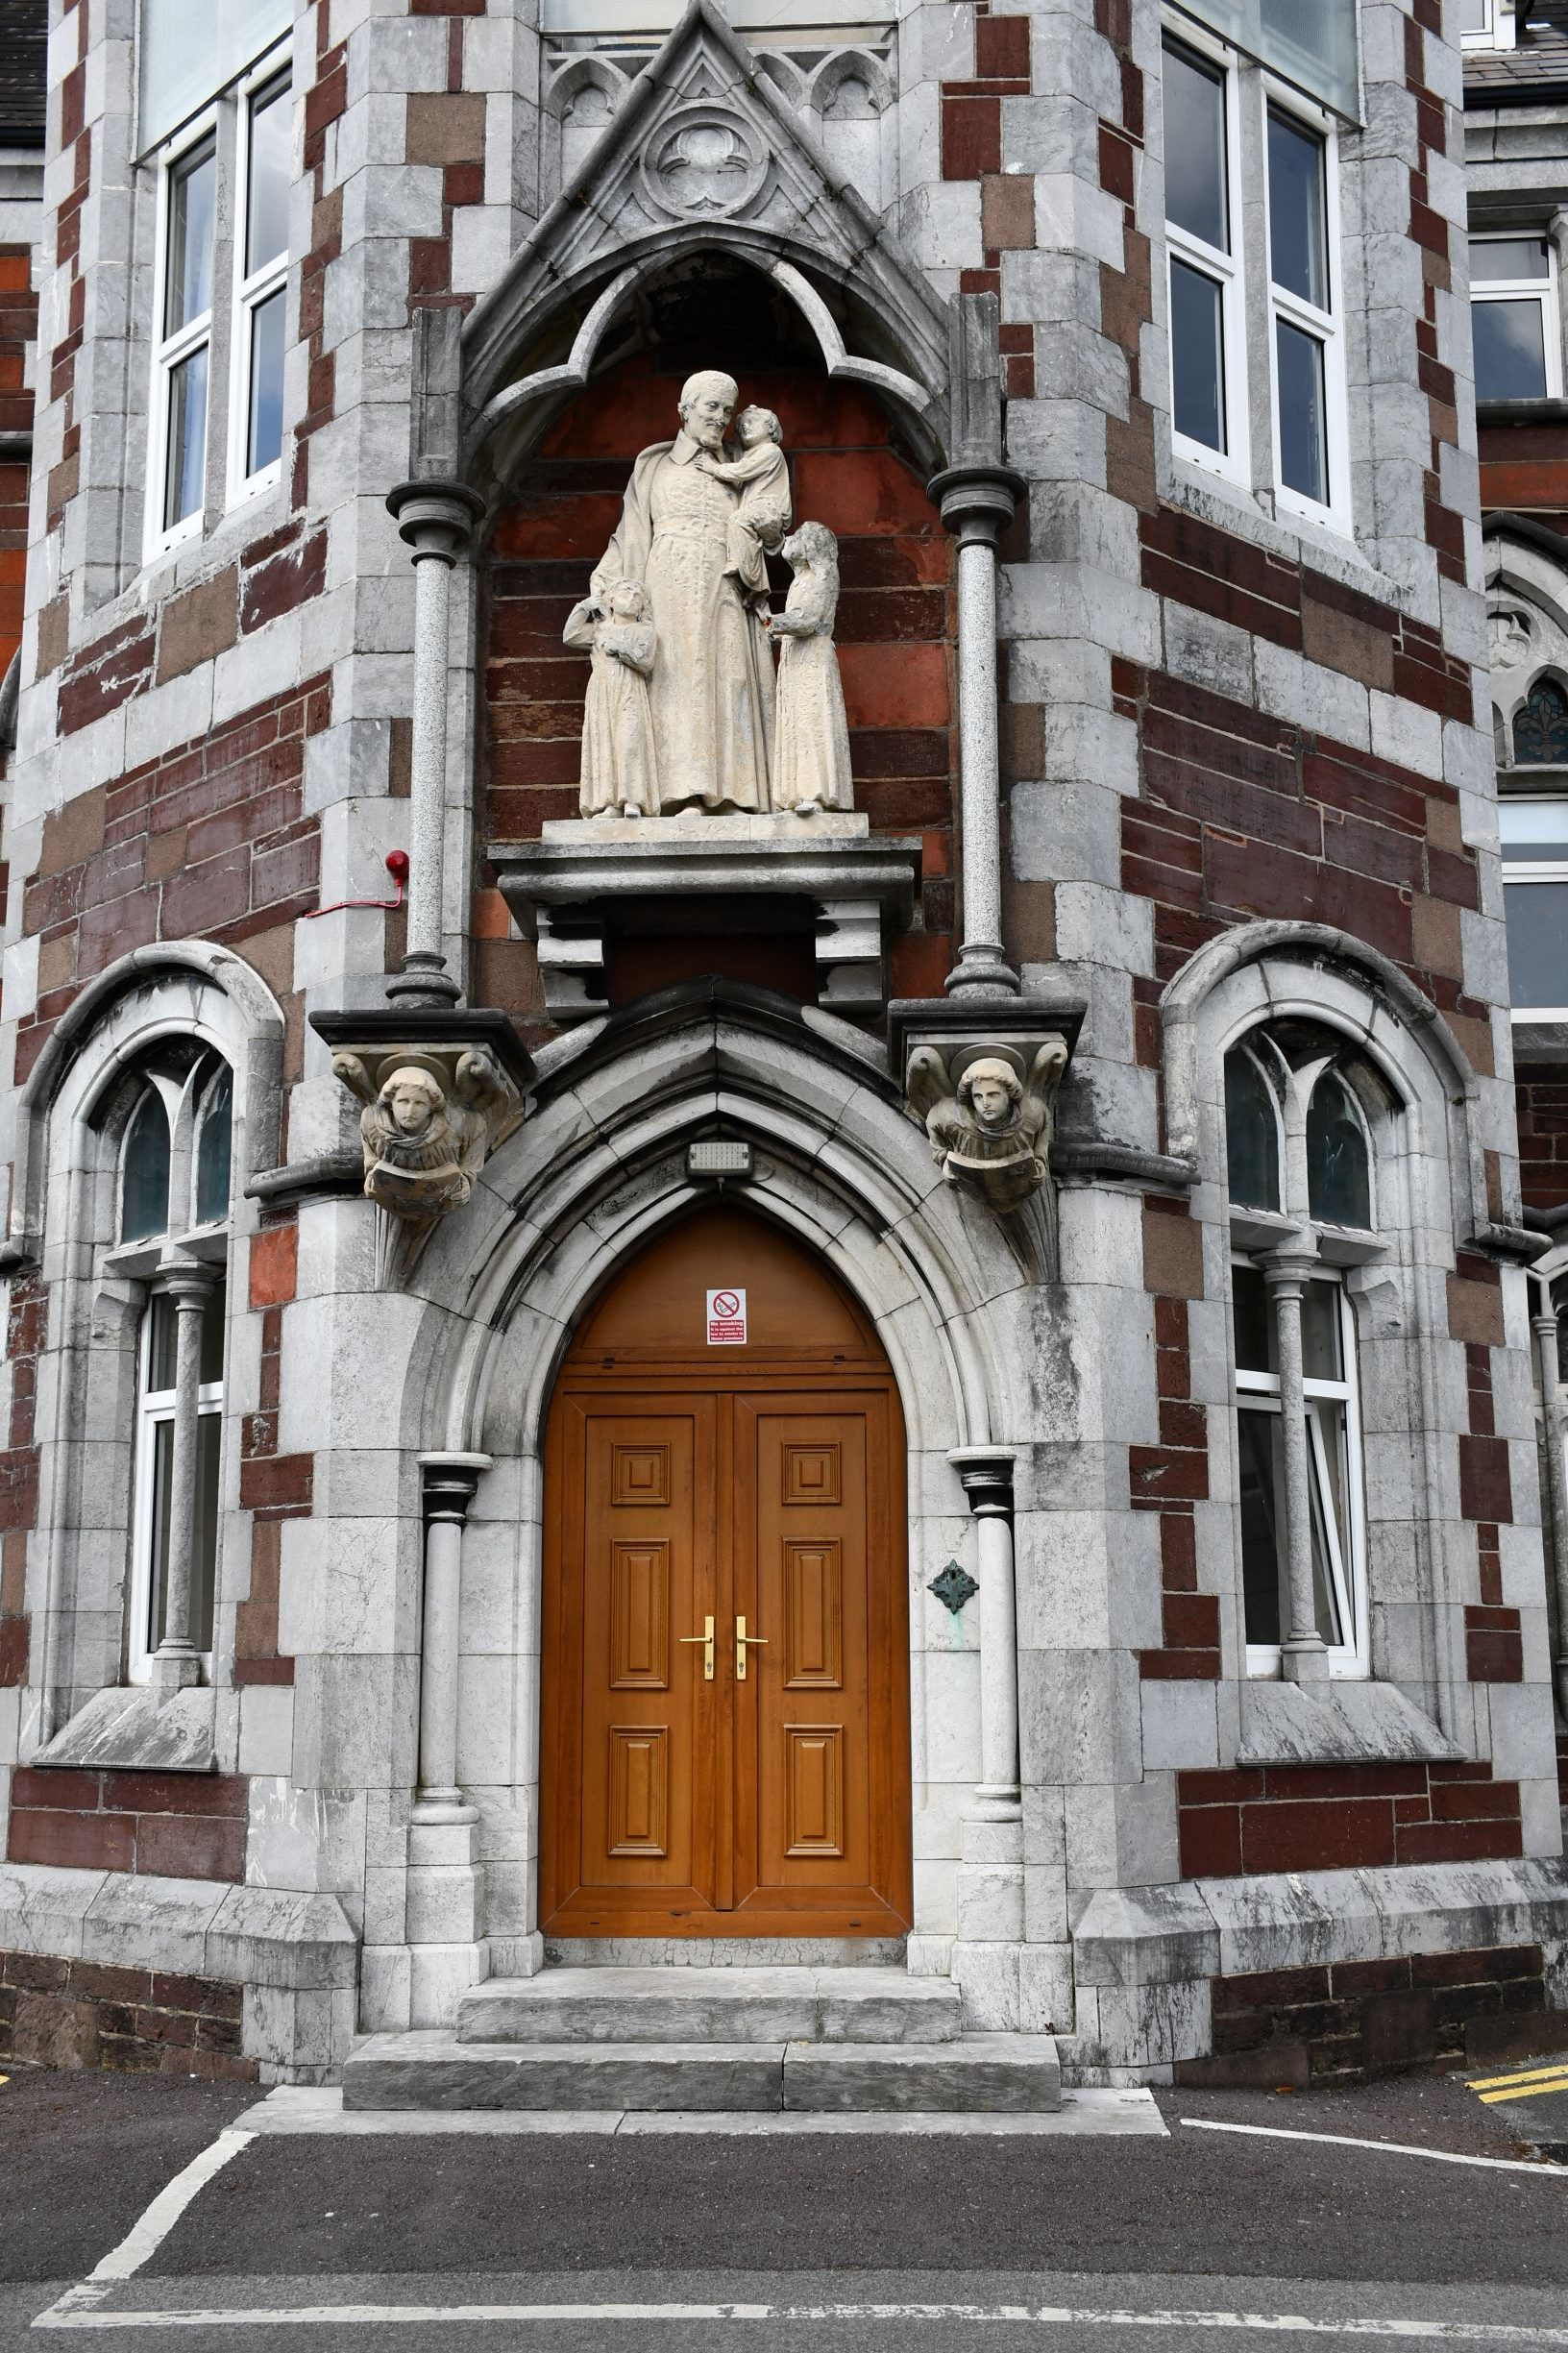 Entrance and Statue of St. Vincent de Paul